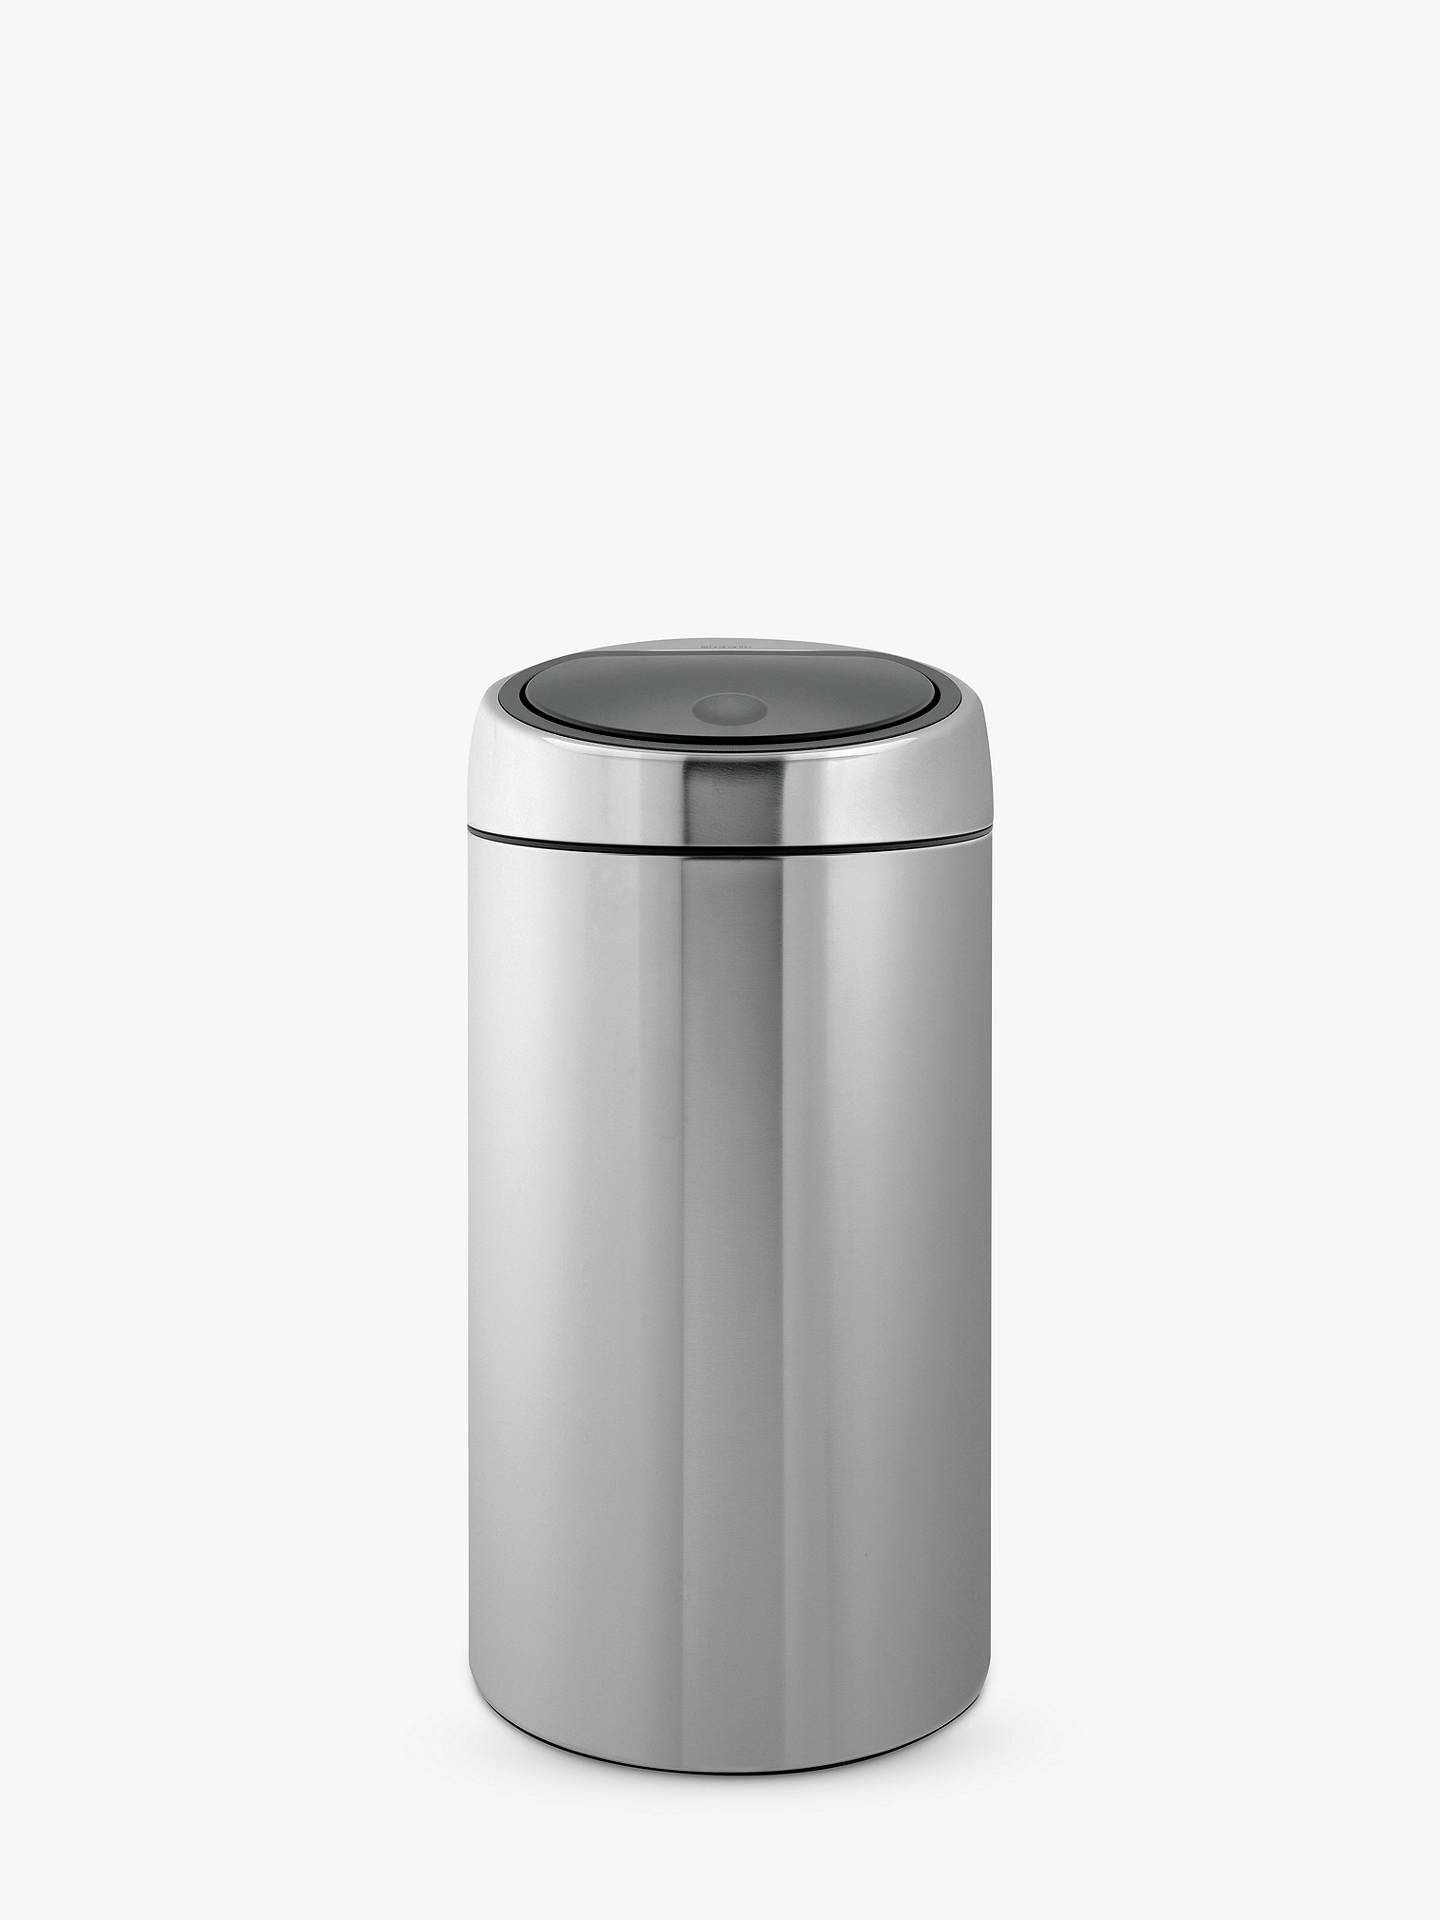 brabantia twin recycling touch bin fingerprint proof matt. Black Bedroom Furniture Sets. Home Design Ideas